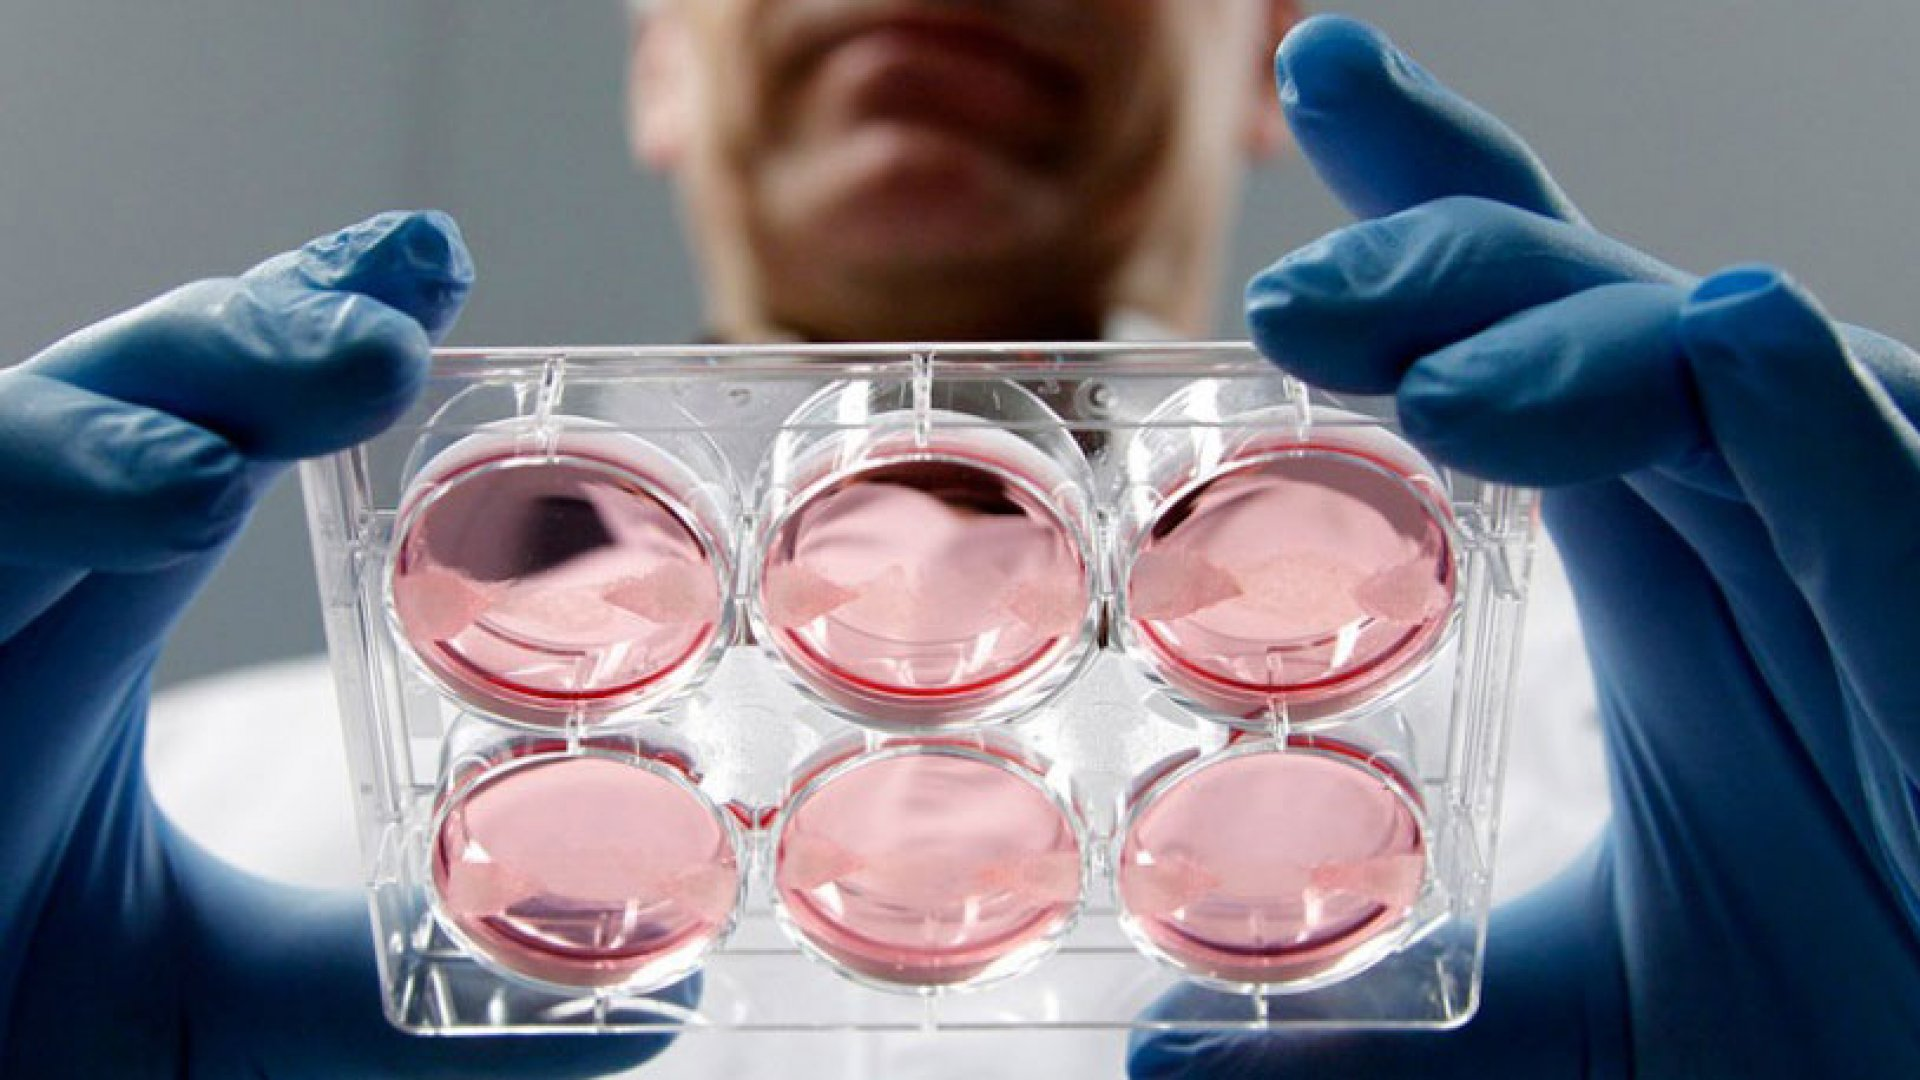 Samples of in-vitro meat, or cultured meat grown in a laboratory, at the University of Maastricht.